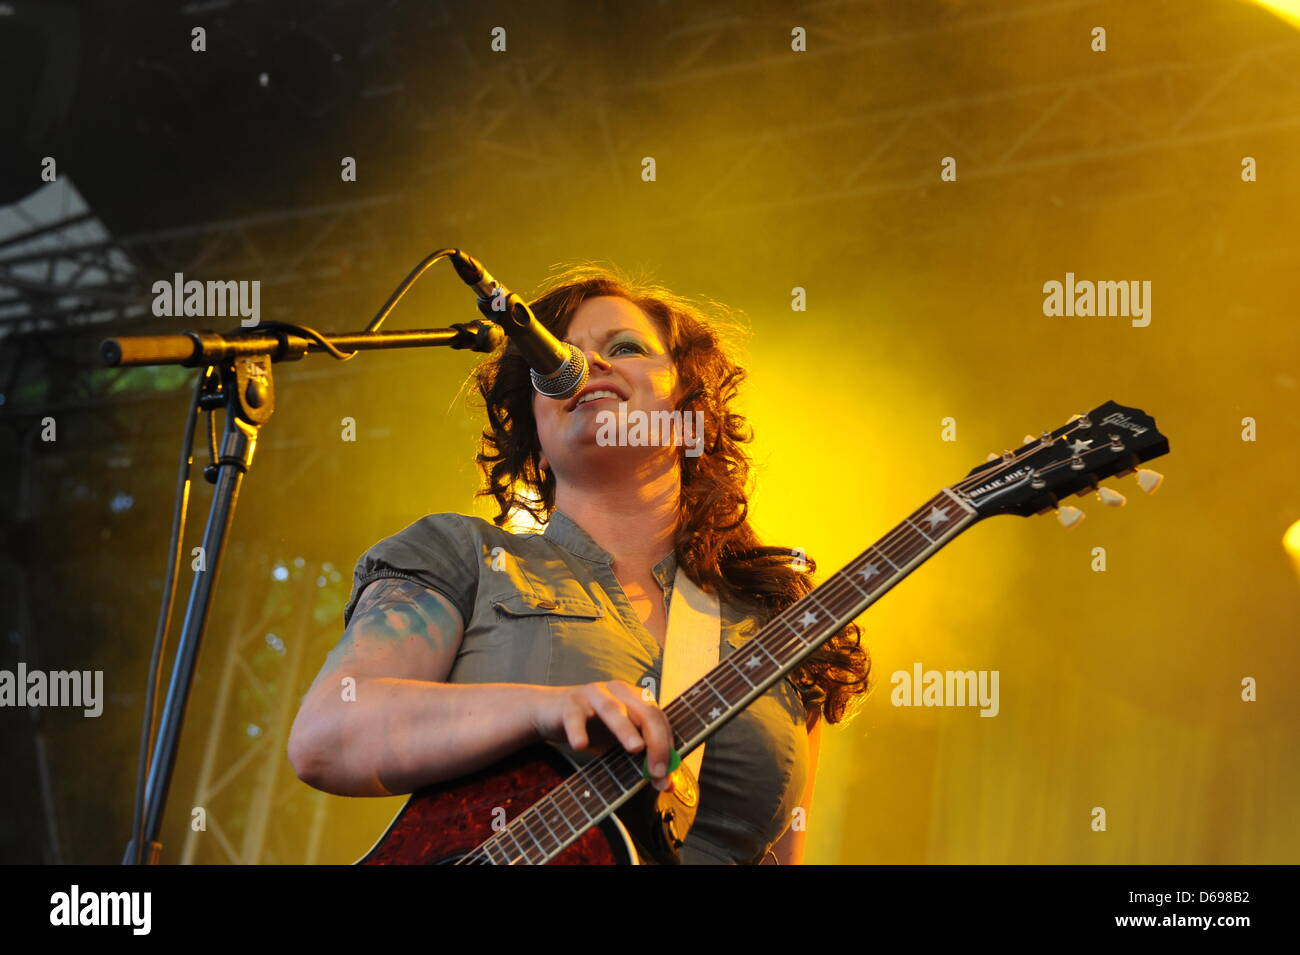 Marianne Sveen of the Norwegian  folk-rock band Katzenjammer performs on stage in Cologne, Germany, 22 June 2012. - Stock Image